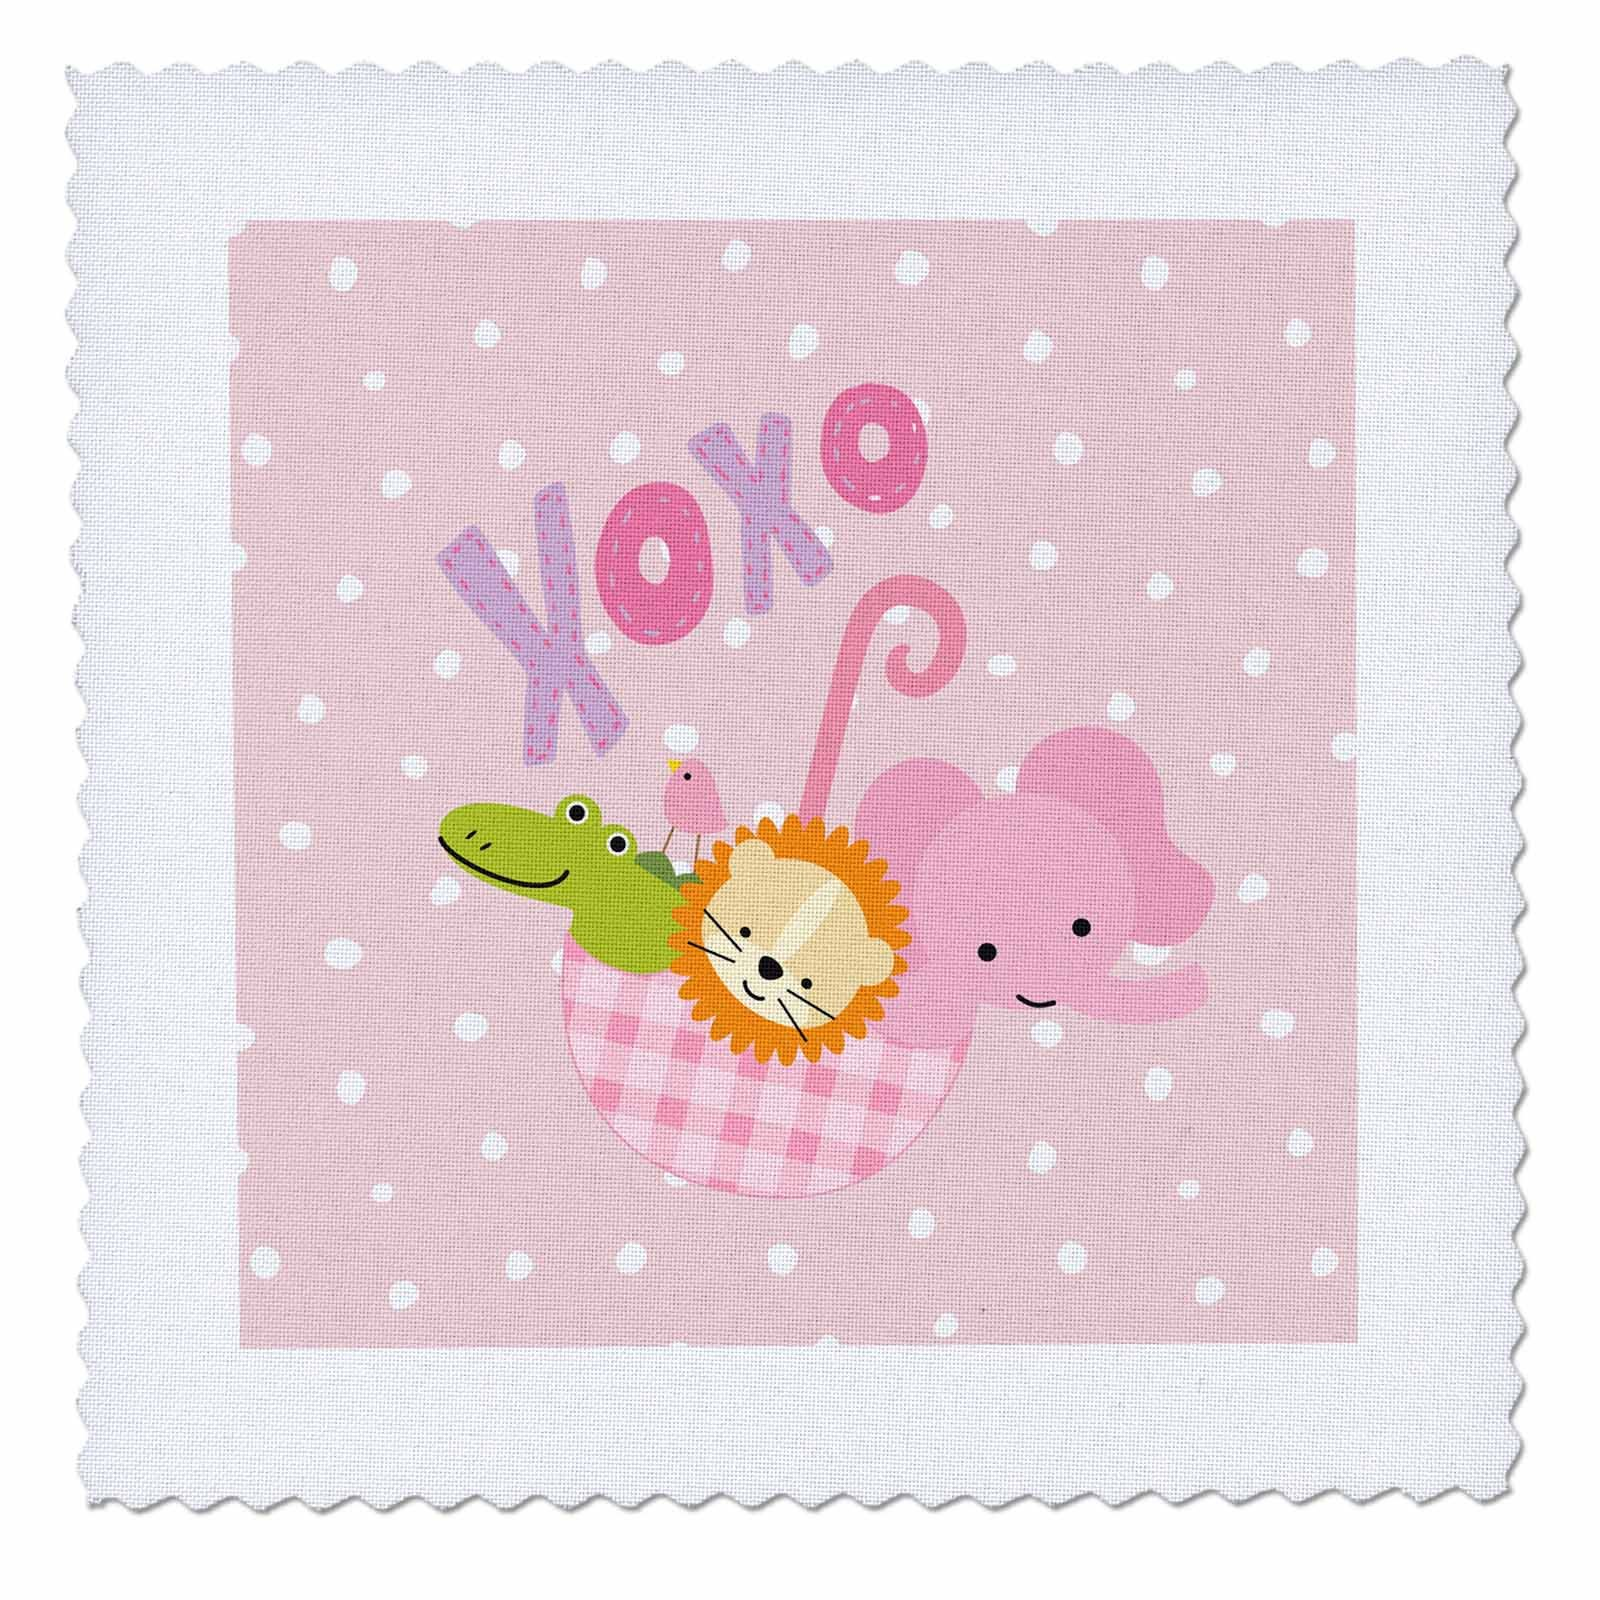 3dRose Uta Naumann Sayings and Typography - Cute Children Illustration- Wild Animals on Pink Polkadots- XOXO - 22x22 inch quilt square (qs_275546_9)